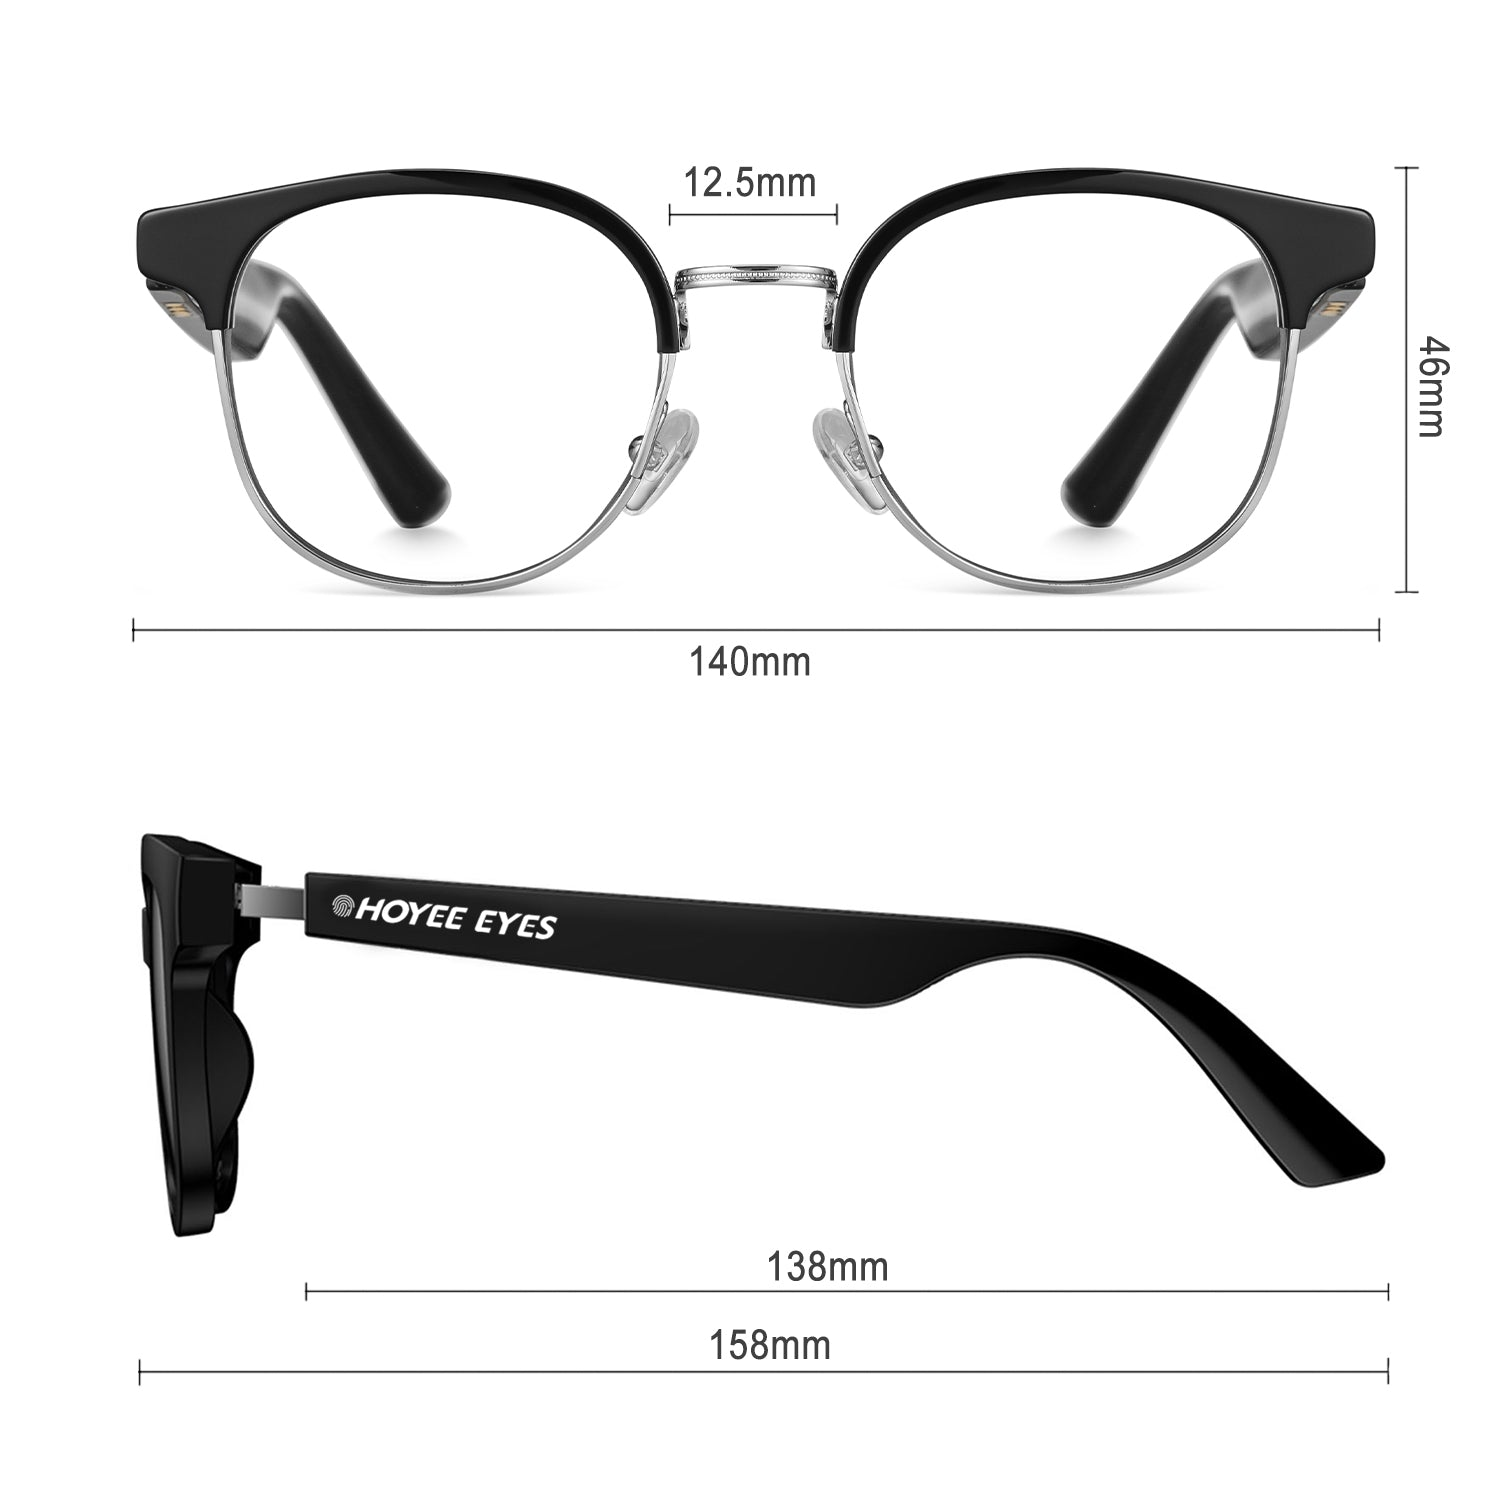 hoyee eyes luna smart blue light blockers dimensions